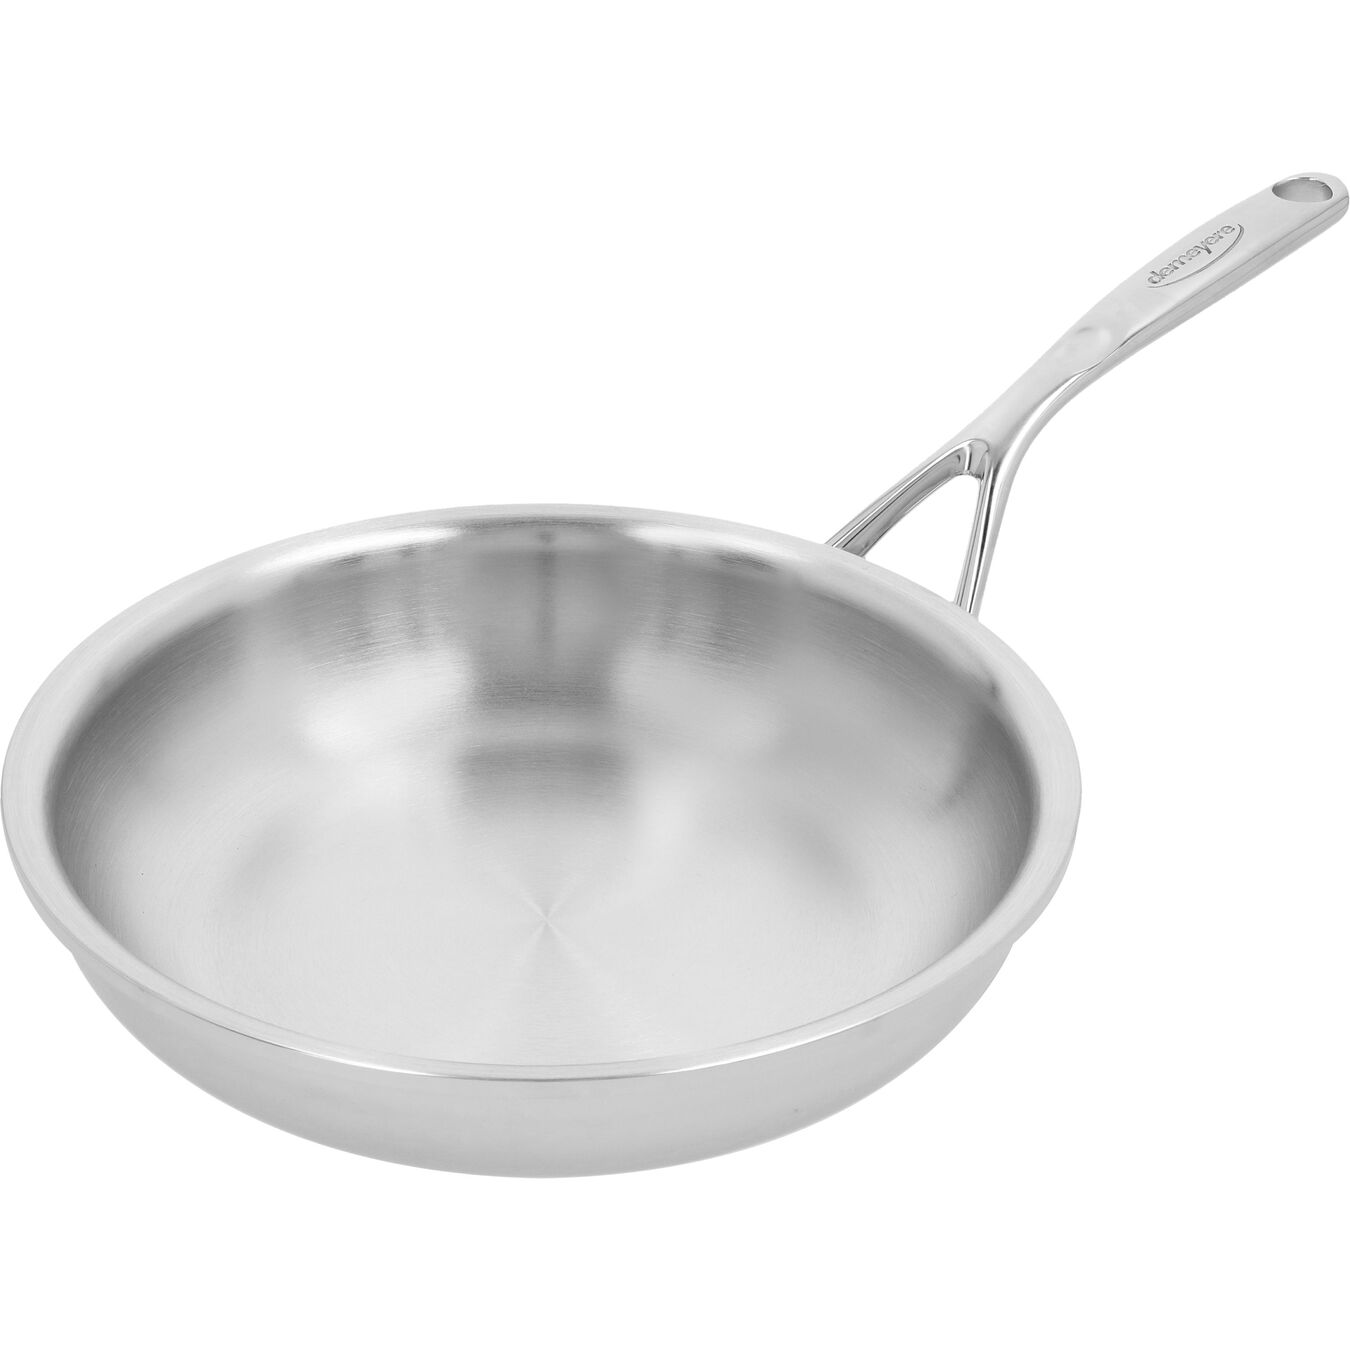 9.5-inch, 18/10 Stainless Steel, Frying pan,,large 4